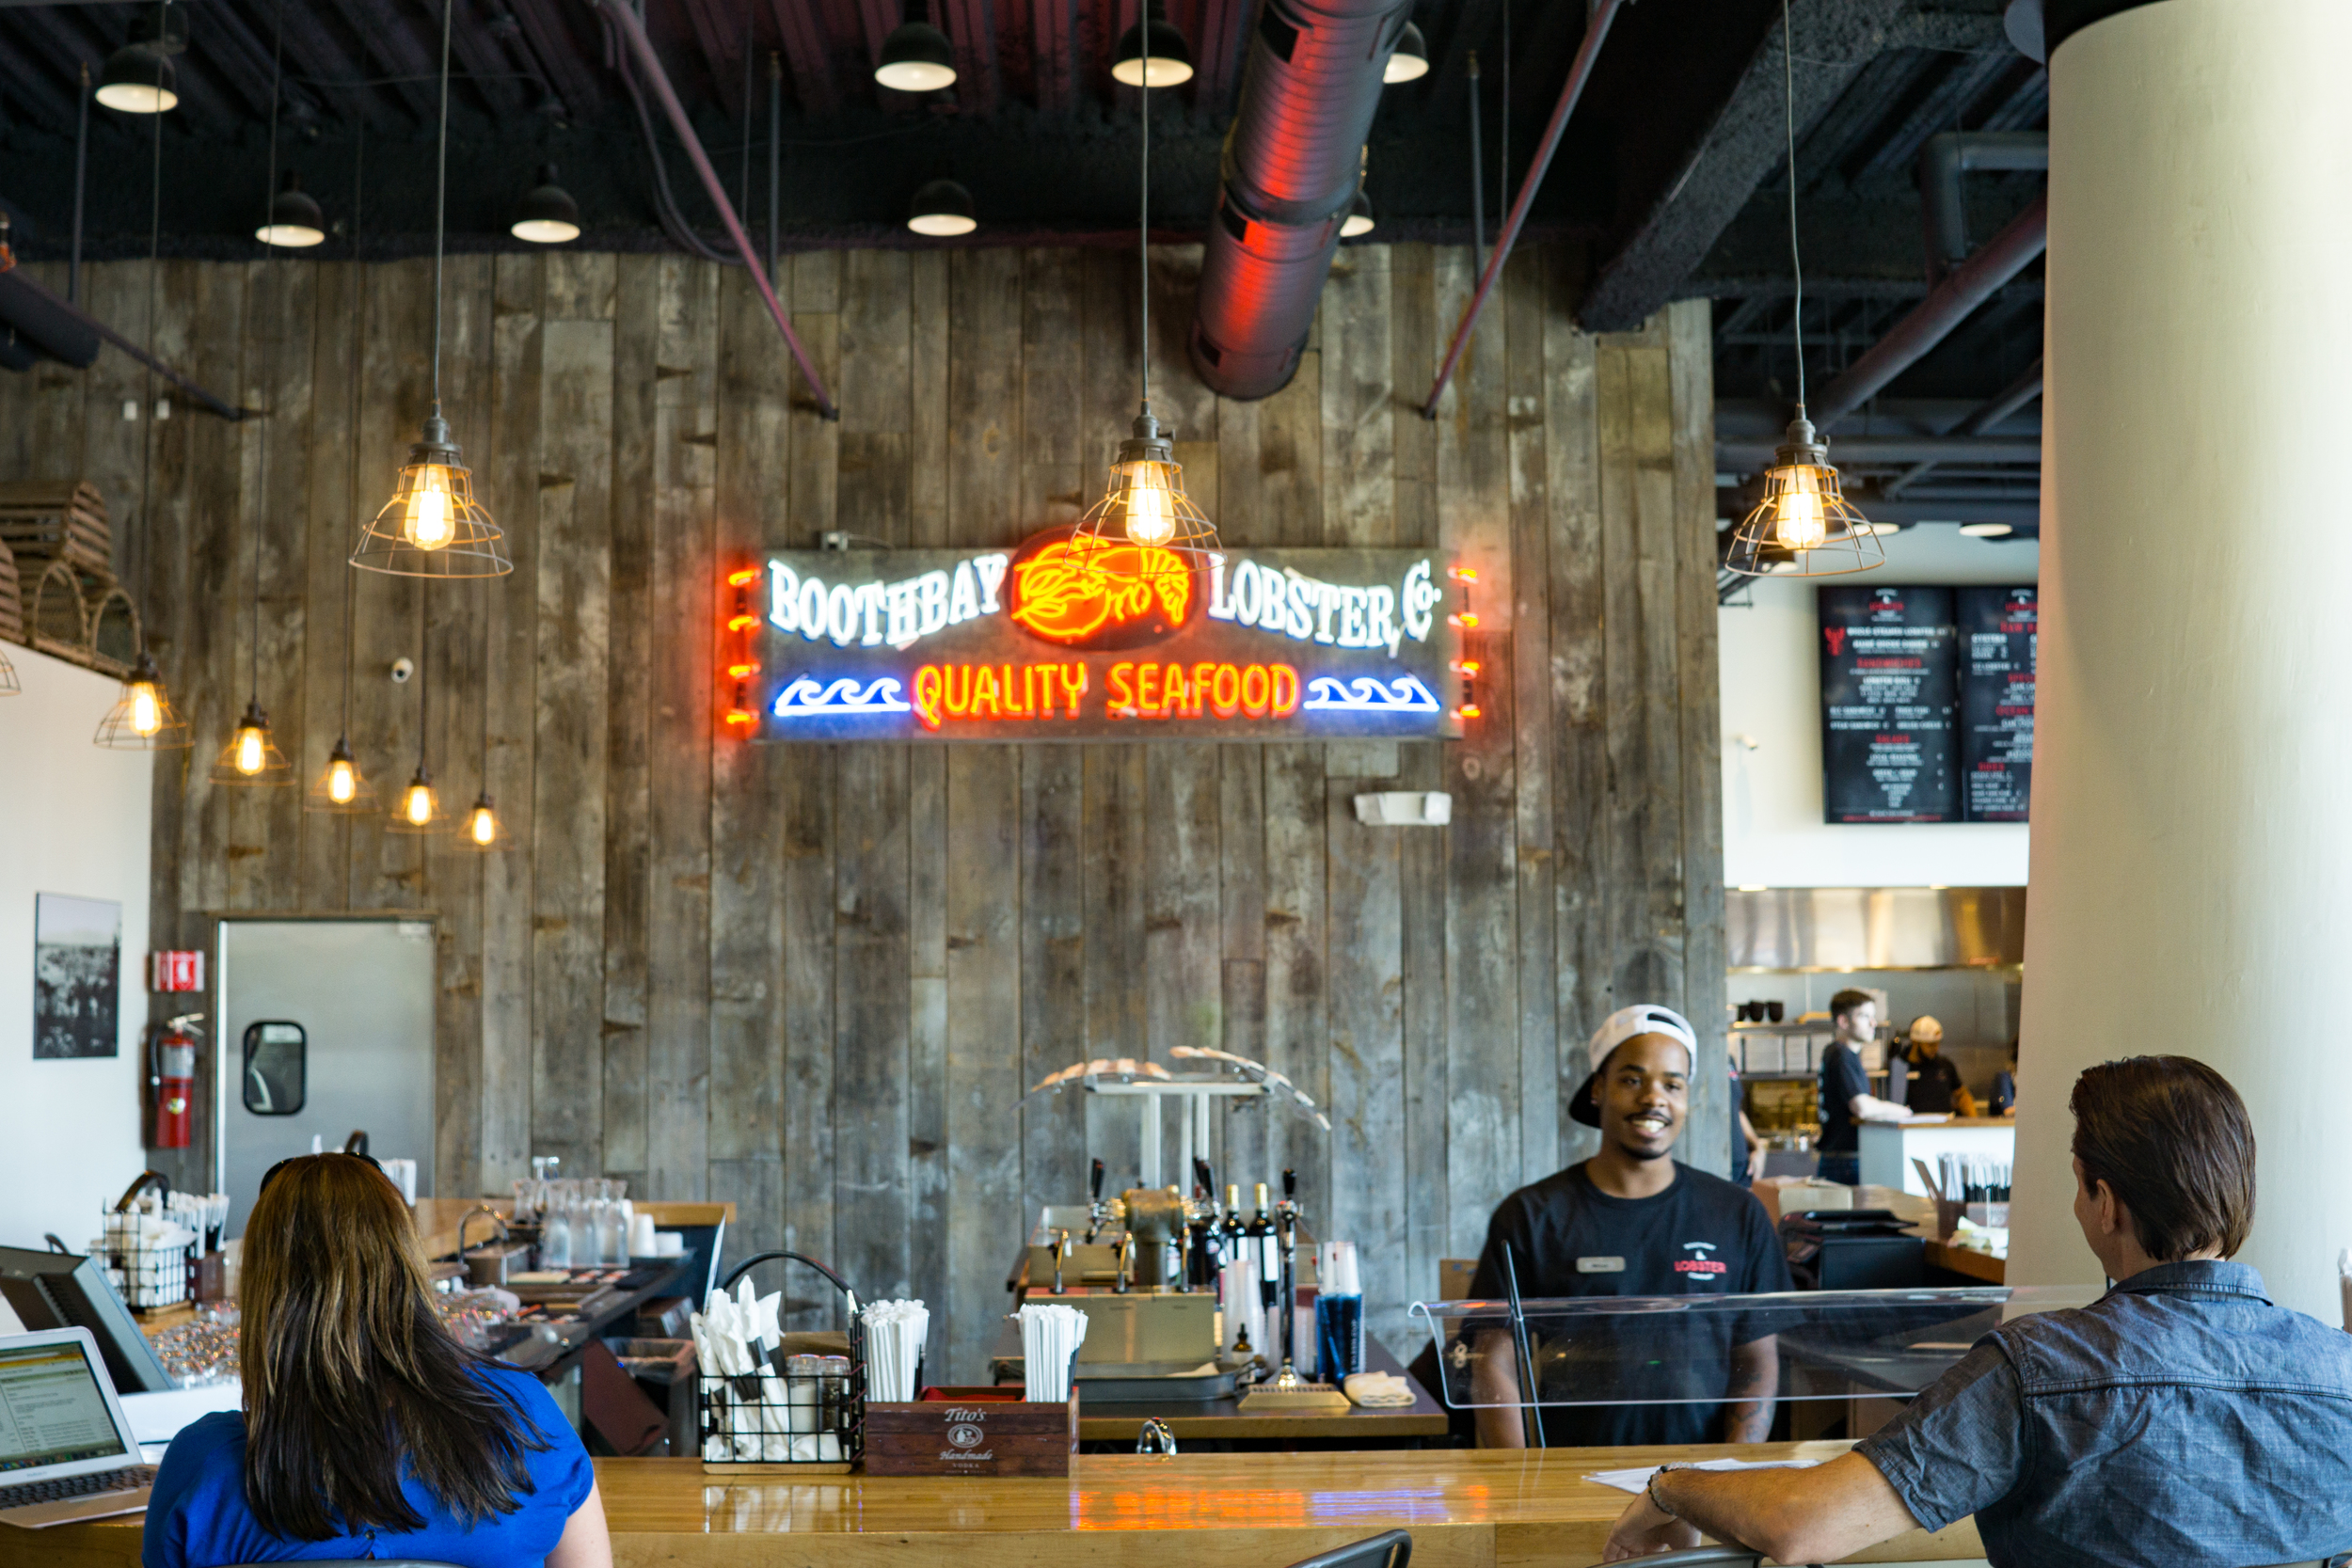 Boothbay Lobster Company Opens in Stamford, CT serving Maine lobster